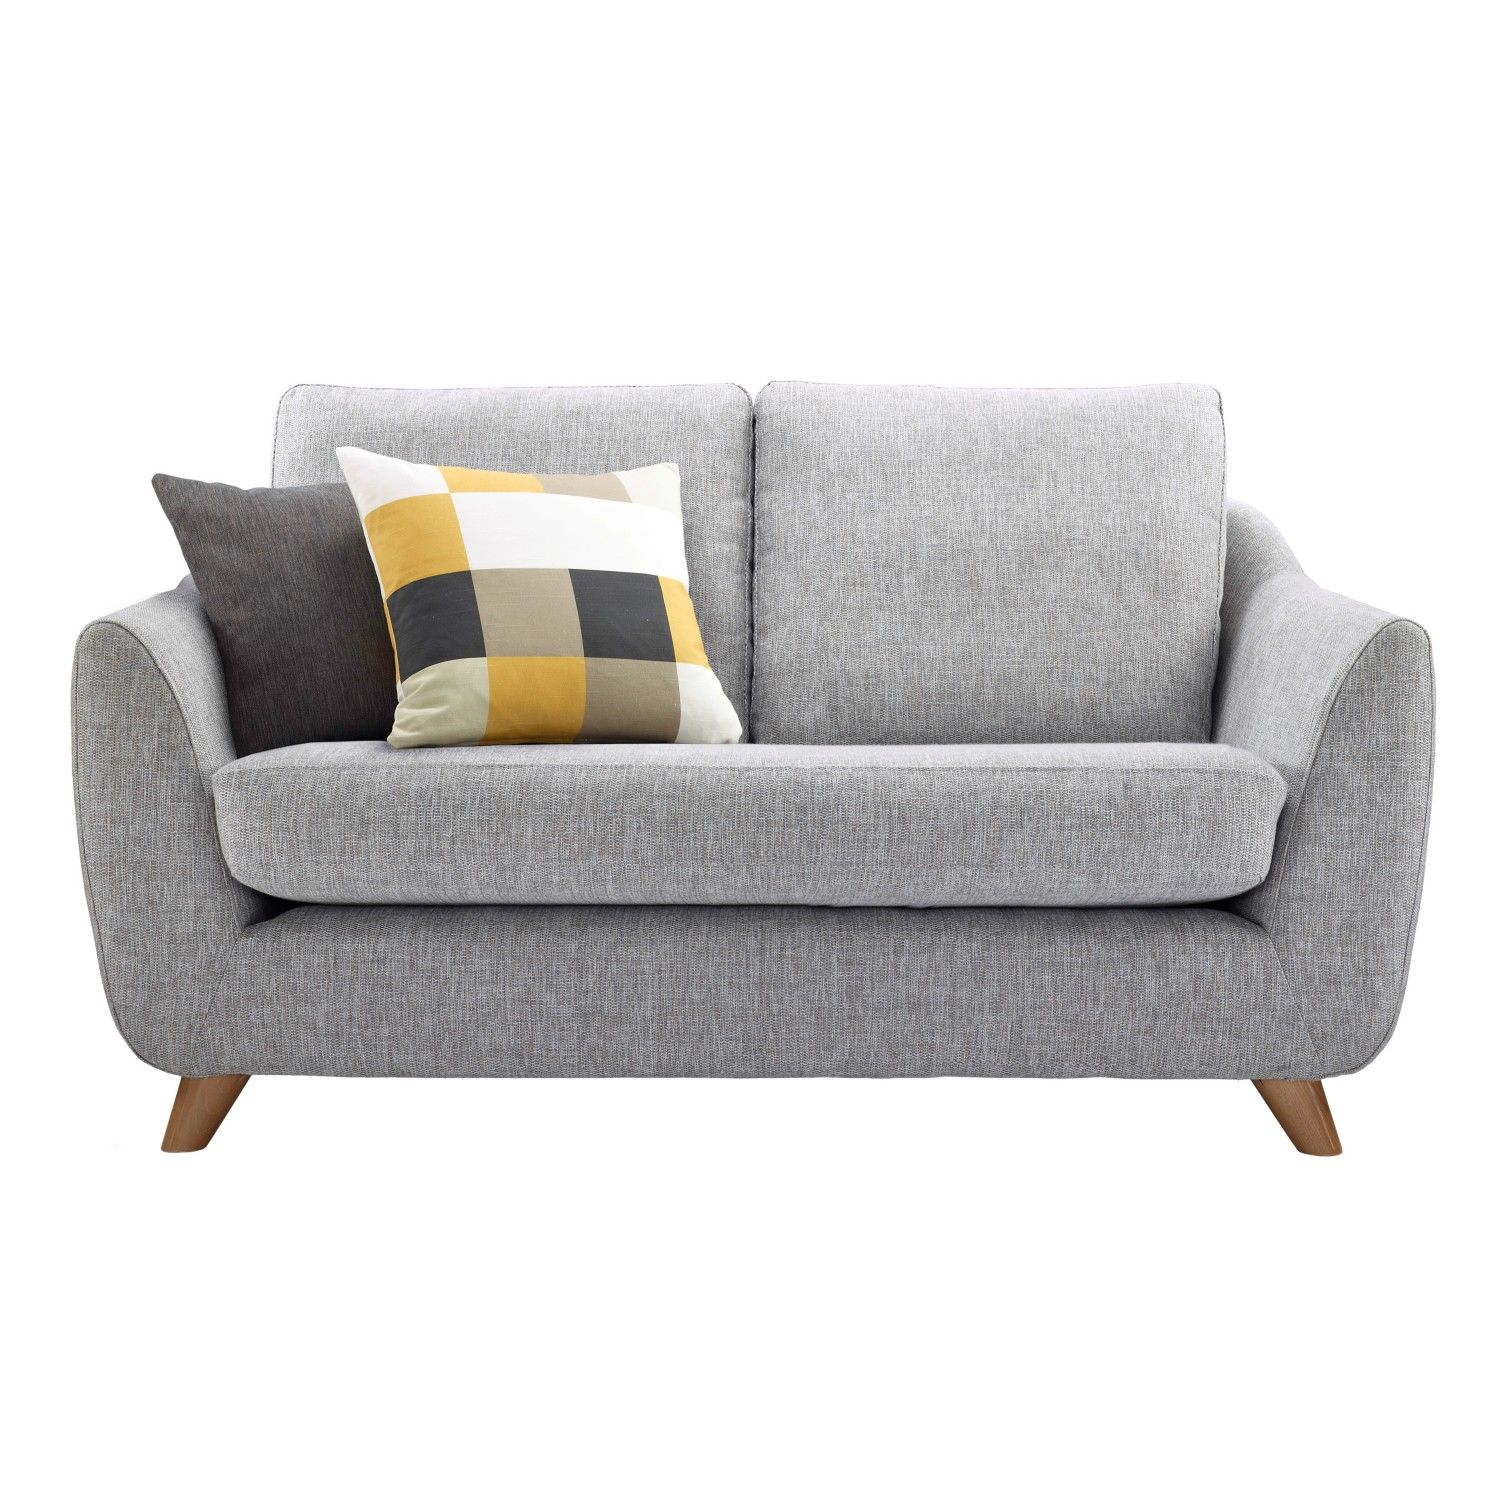 Design Small Sofas loveseats for small spaces cheap sofa decoration fascinating grey legged sofa